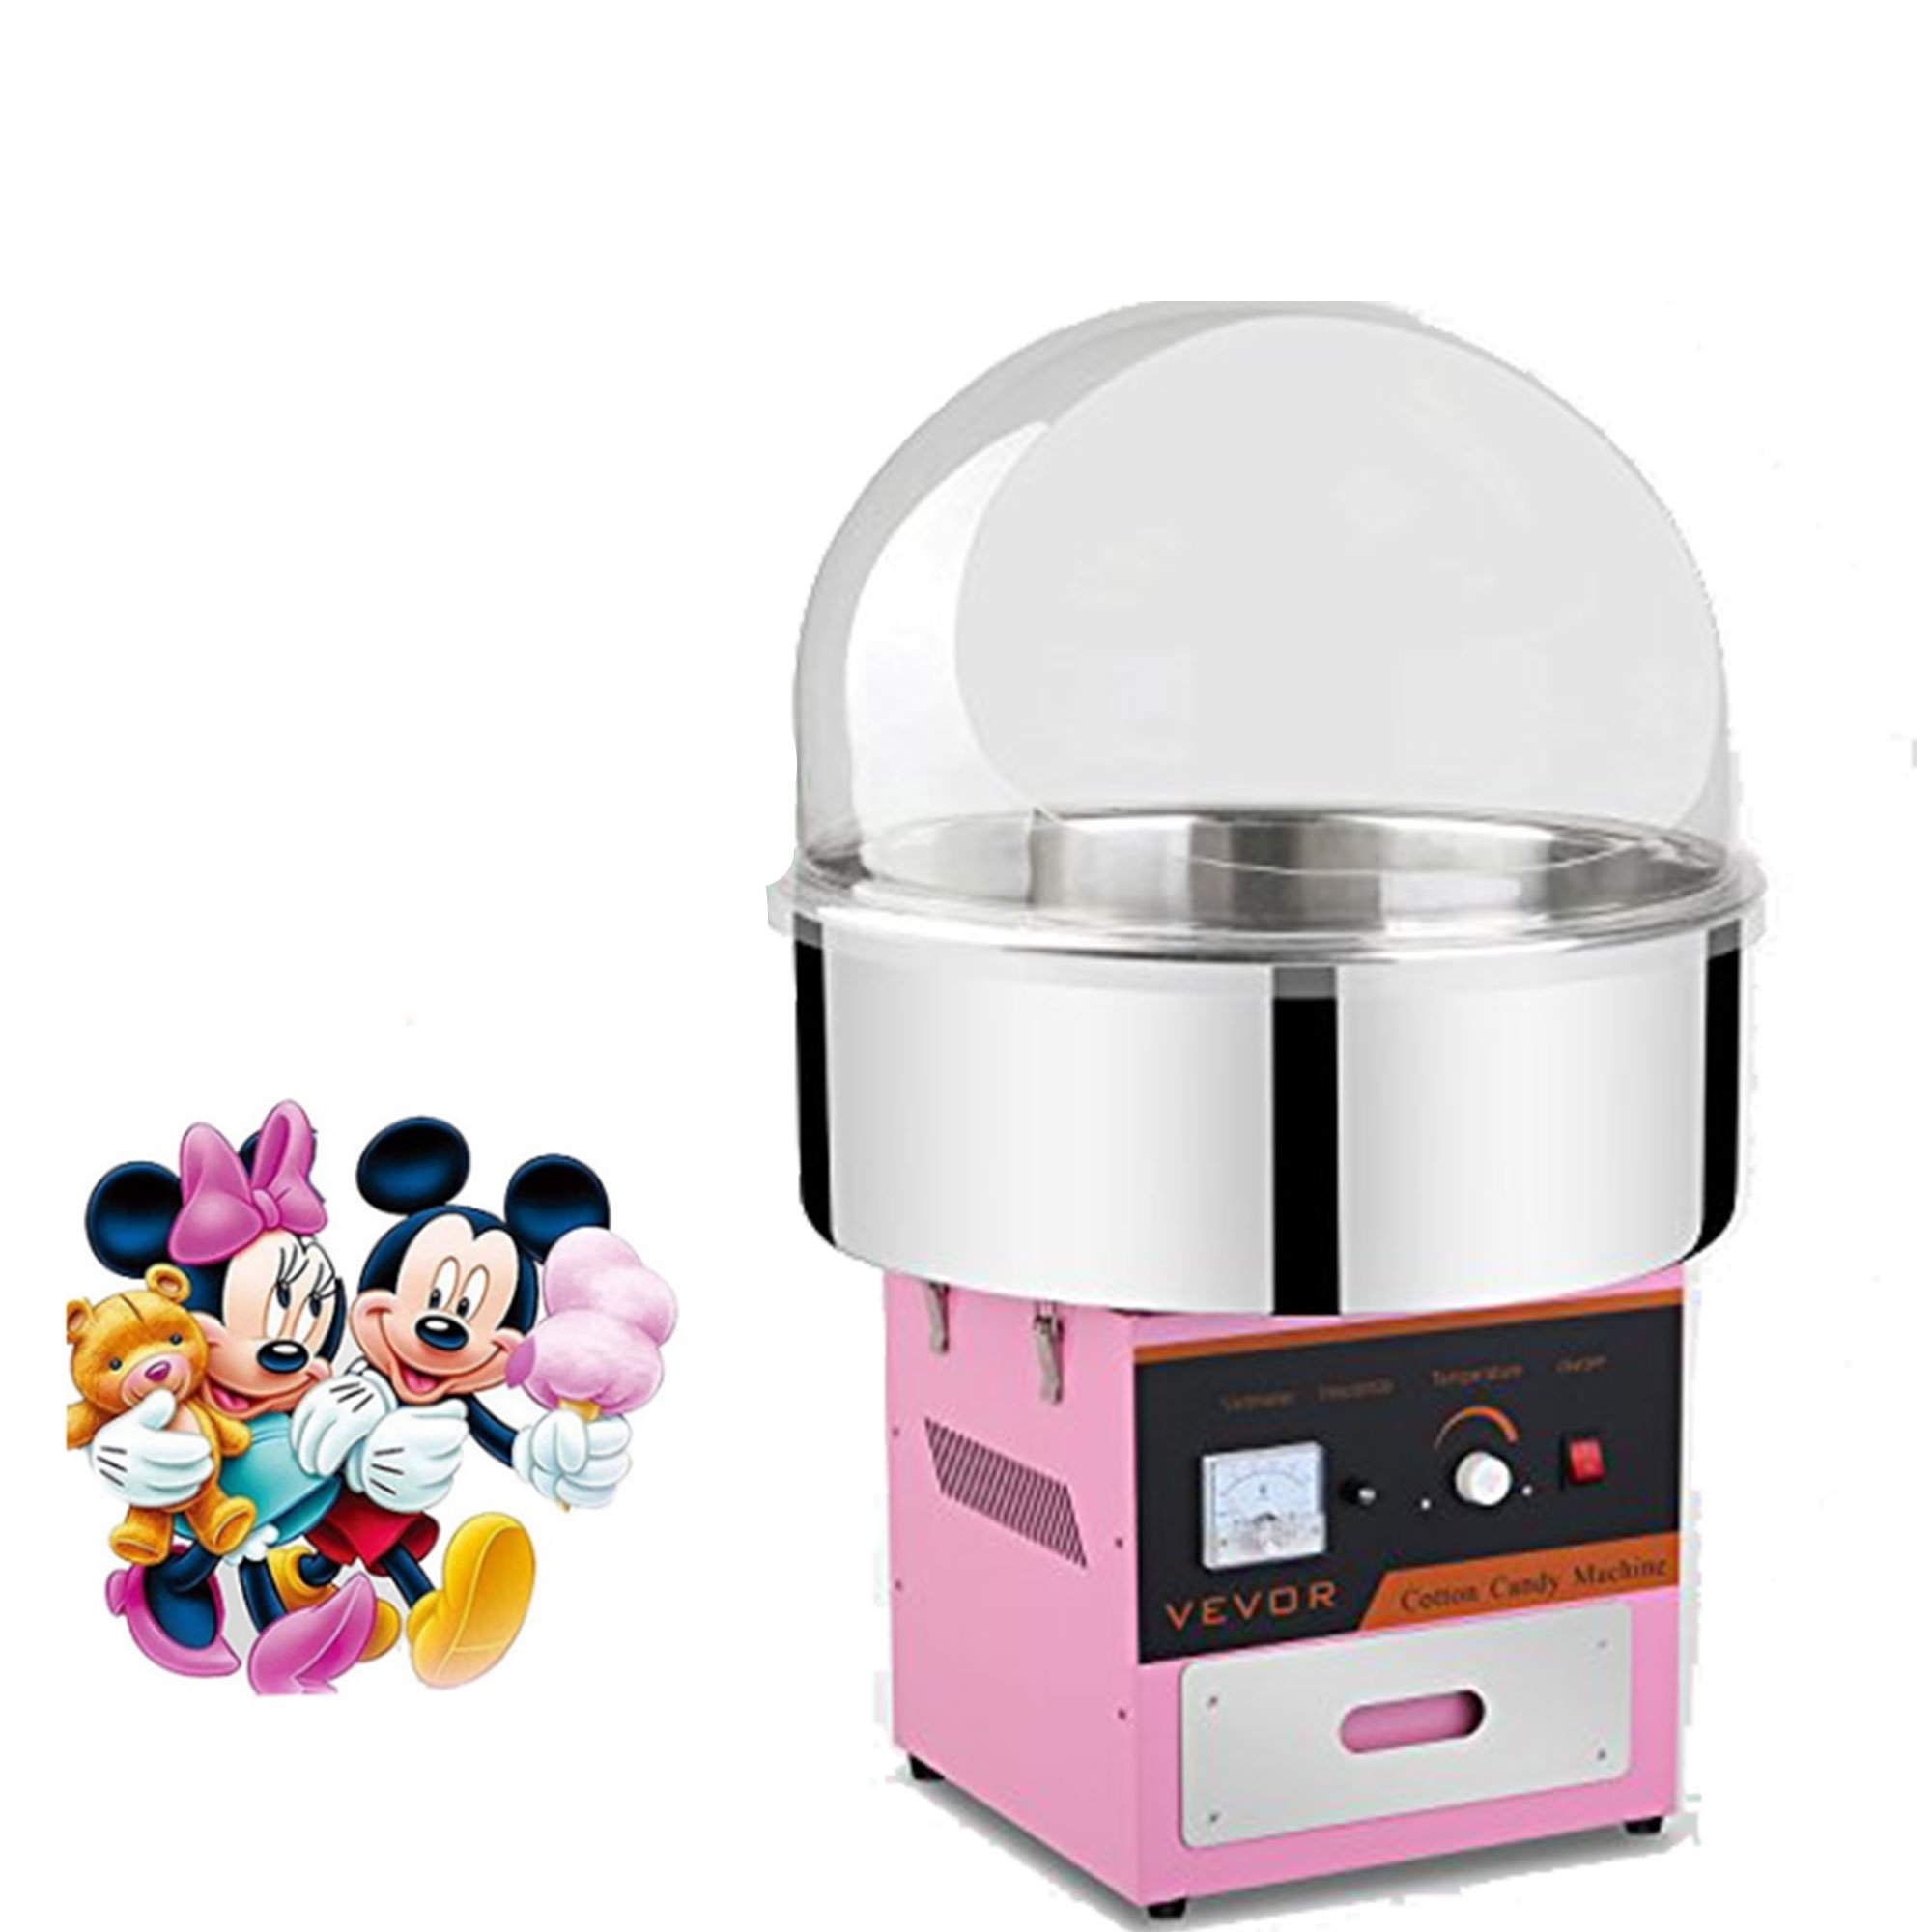 OrangeA Cotton Candy Machine Commercial Cotton Candy Machine Candy Floss Maker 1030W Electric Cotton Candy Maker Stainless Steel Pink (Cotton Candy Machine with Cover)